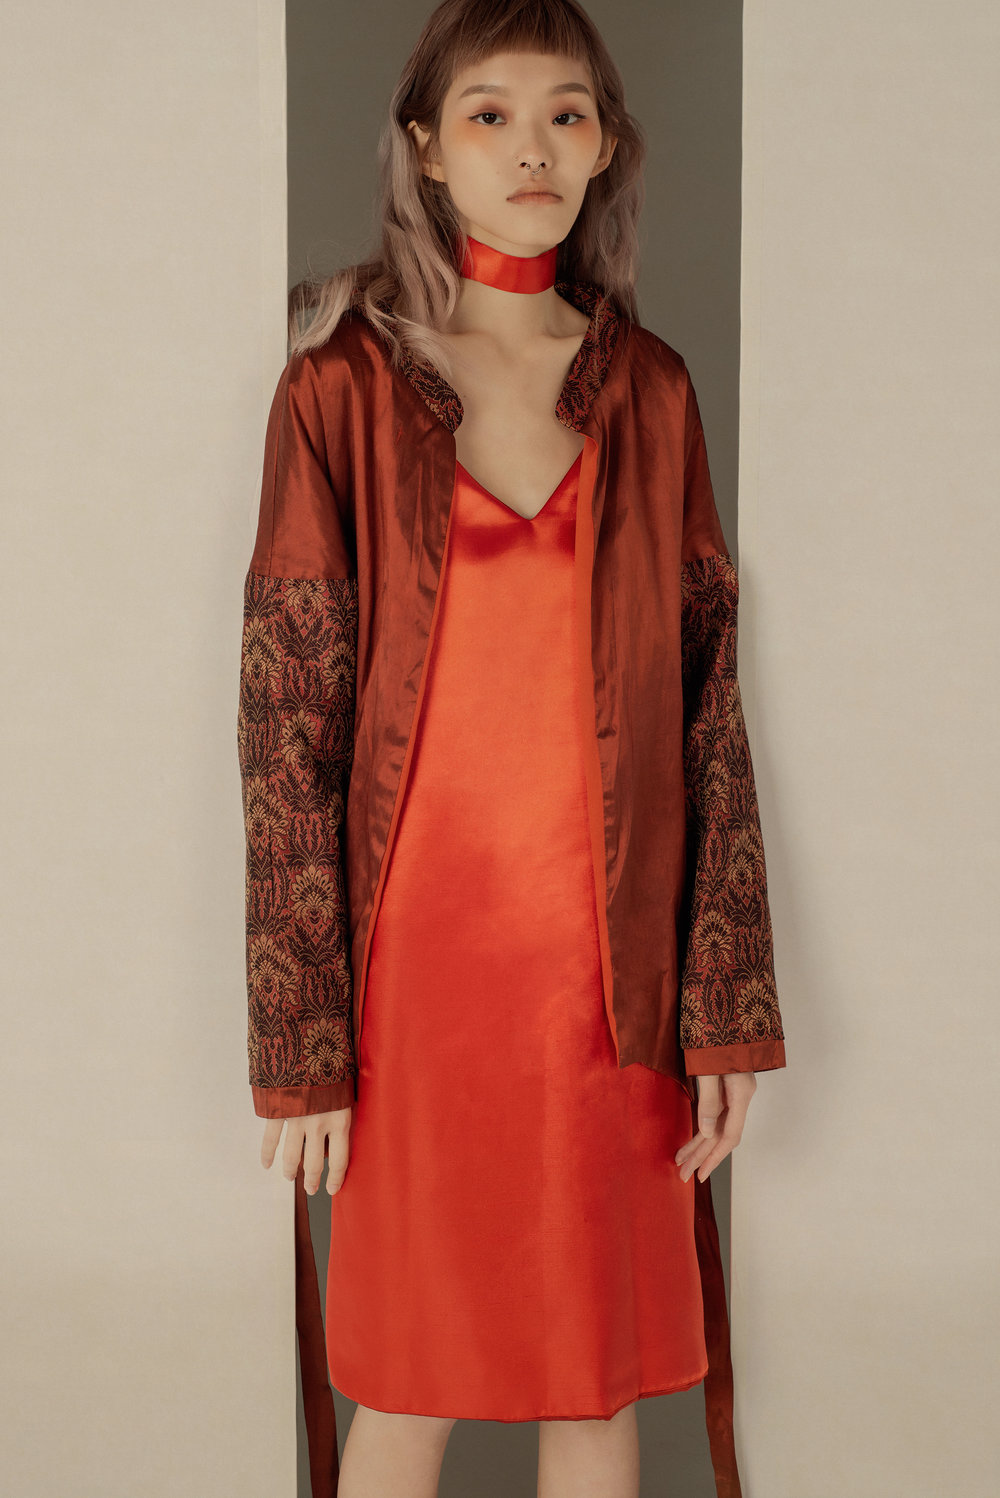 Slip Dress and Raw Silk Jacket